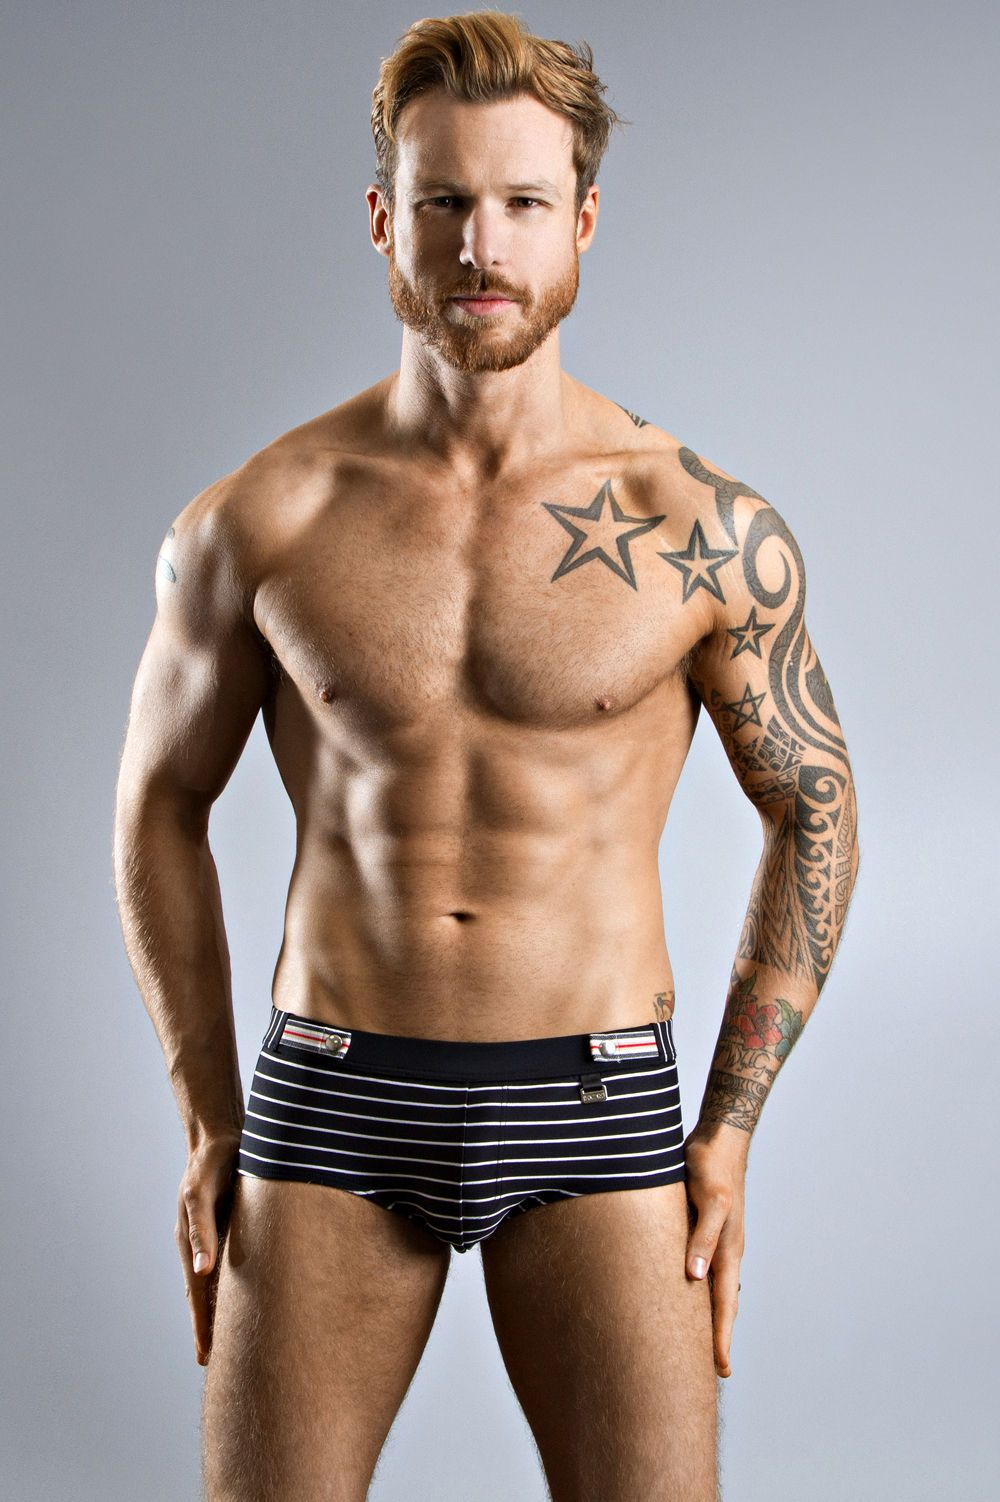 daba170e41f585 The horizontal stripes across this vintage swimwear for men will look  amazing on the beach this